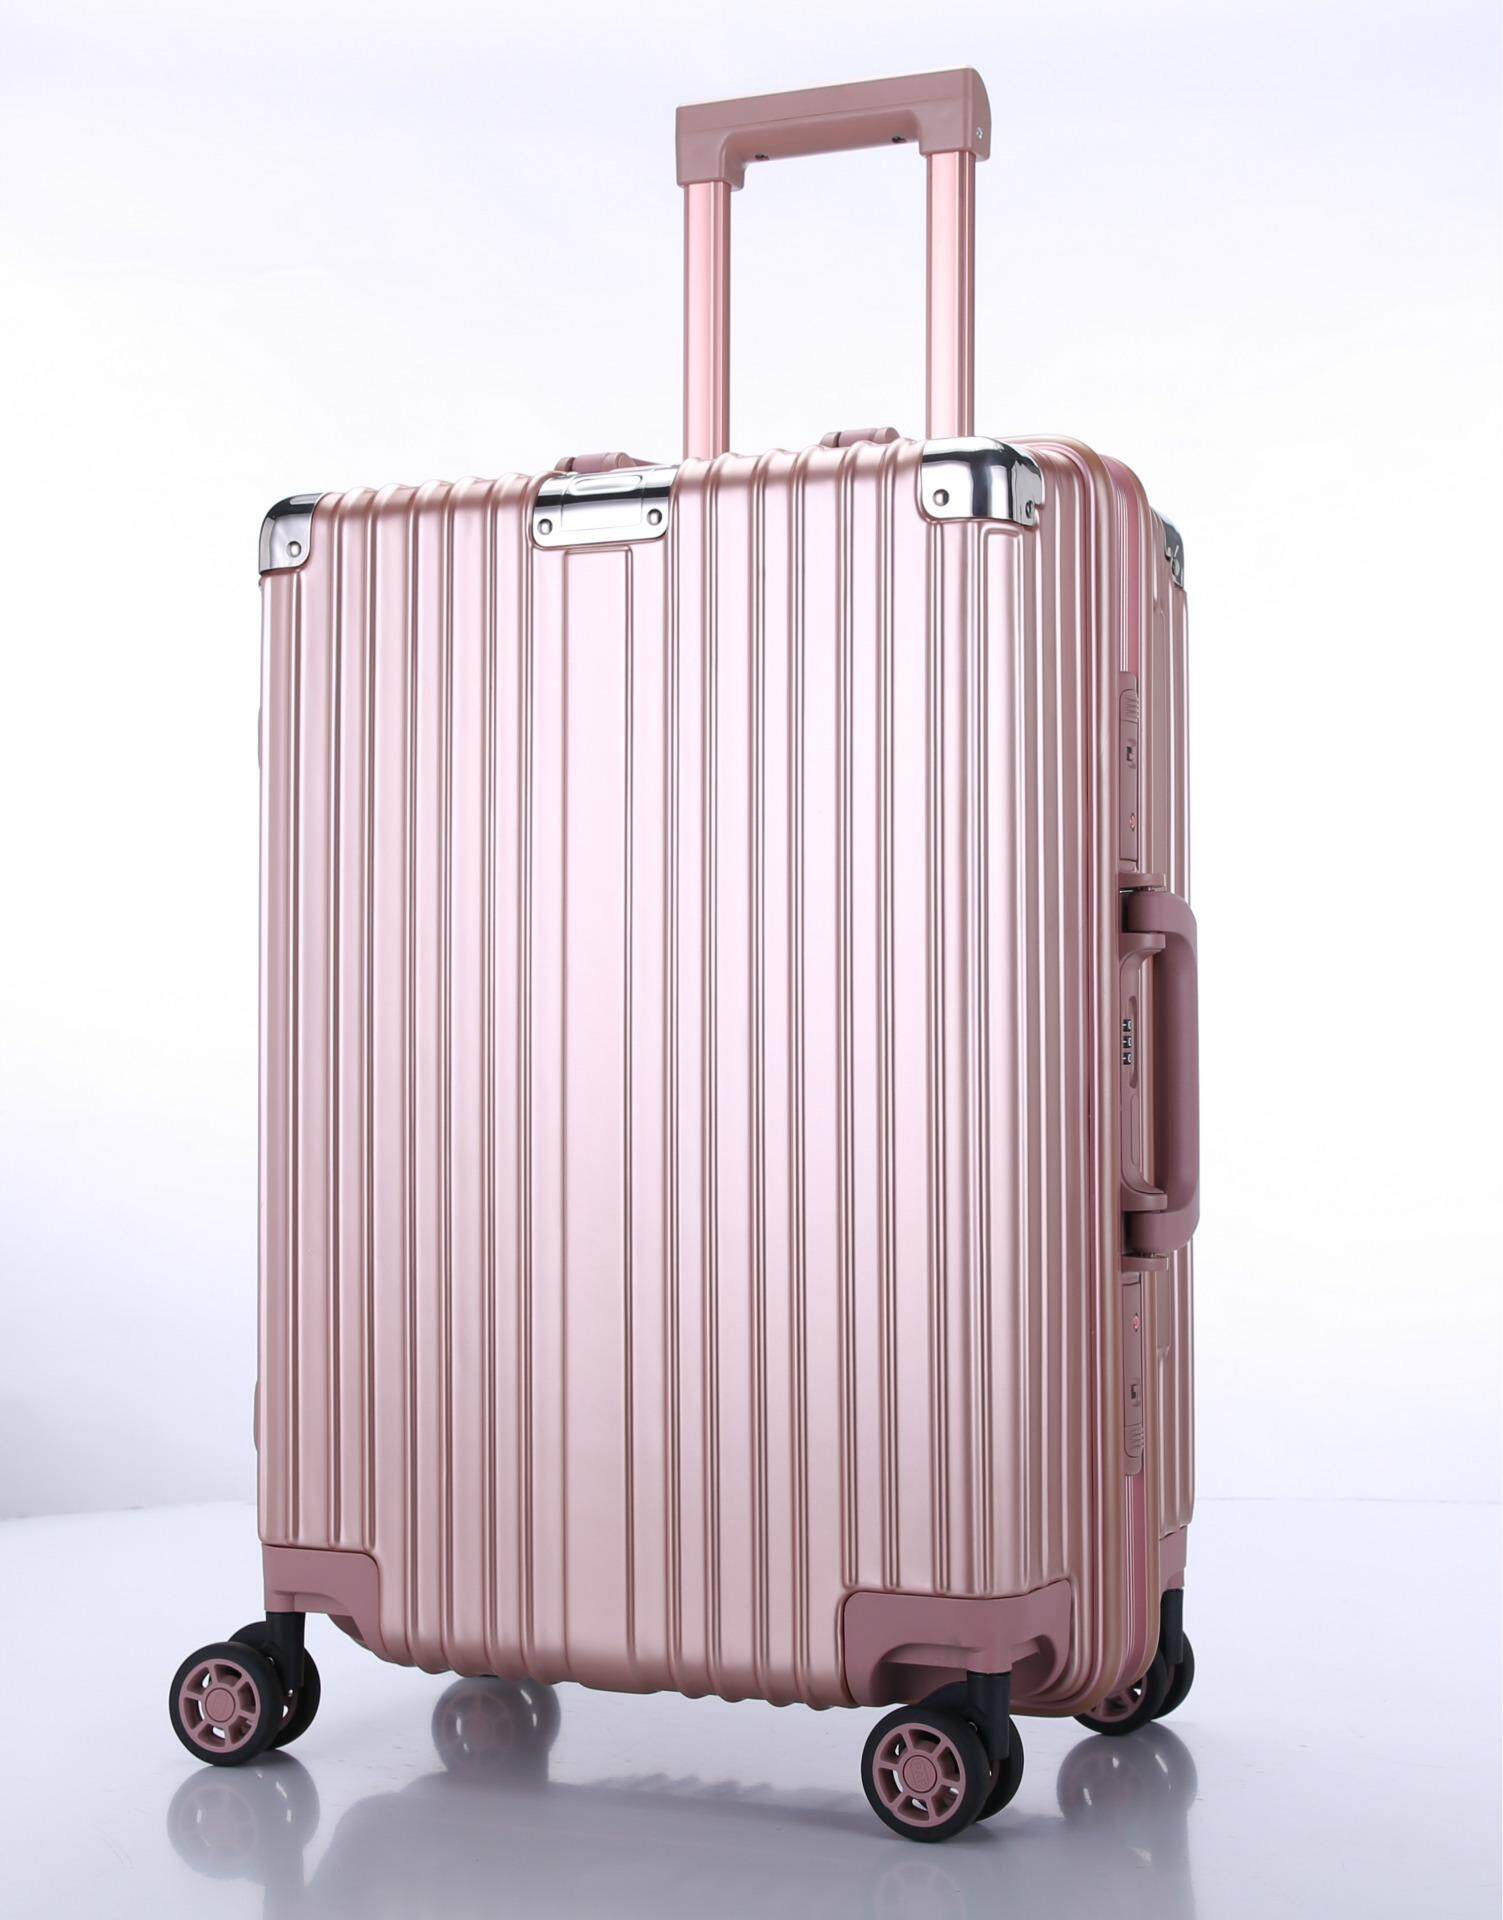 As Universal Wheel Business Suit Case Travel Trolley Case By Taobao Collection.